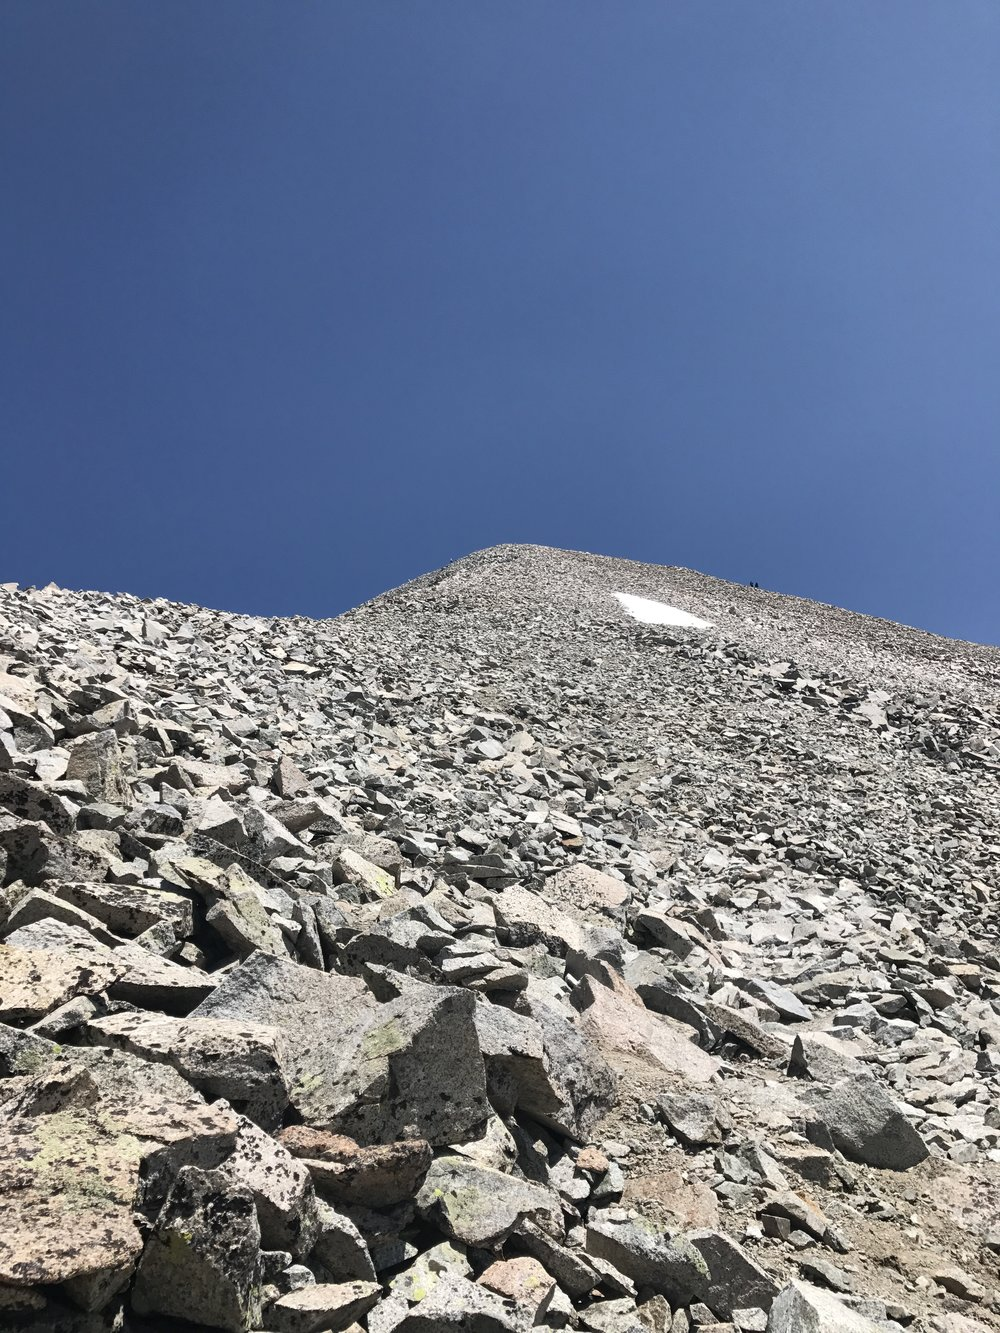 The final push to the summit on Antero. If you look to the right, you'll see two small figures toward the top. These are hikers who found the properly marked cairn trail and took the switchback route. We, of course, made a direct assault.